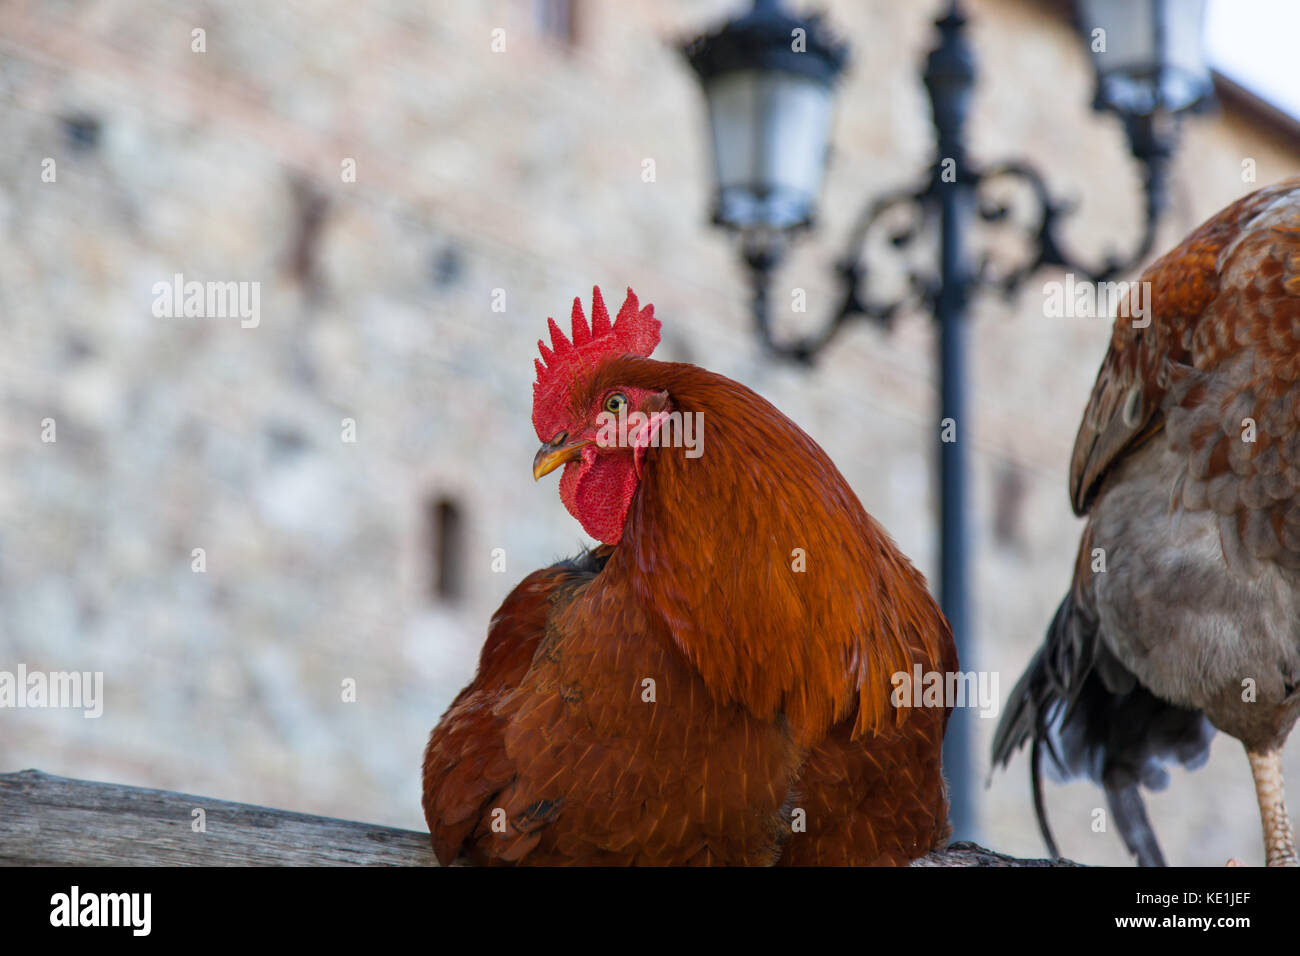 A red feathered rooster sitting calmly on a wooden fence in a castle yard. Stock Photo